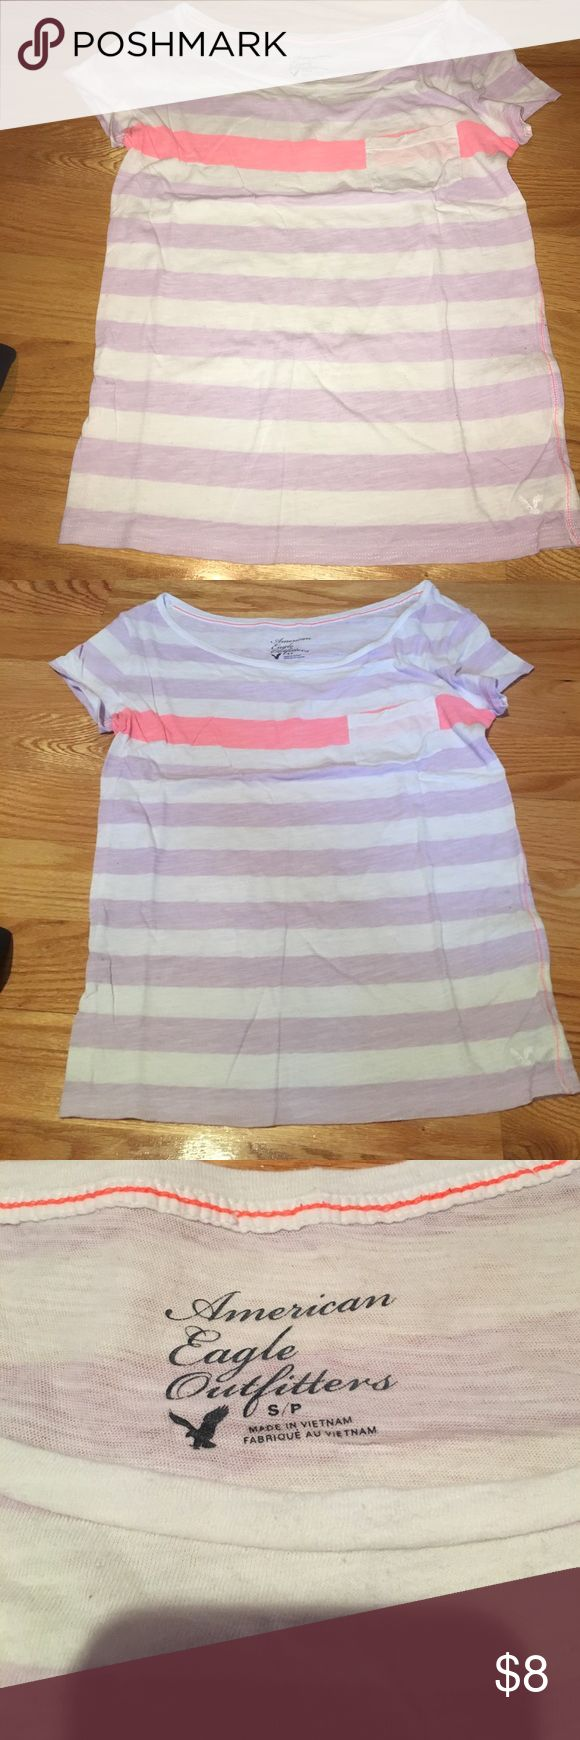 American eagle shirt Excellent condition! Worn once!! Coral stripe in the middle! American Eagle Outfitters Tops Tees - Short Sleeve